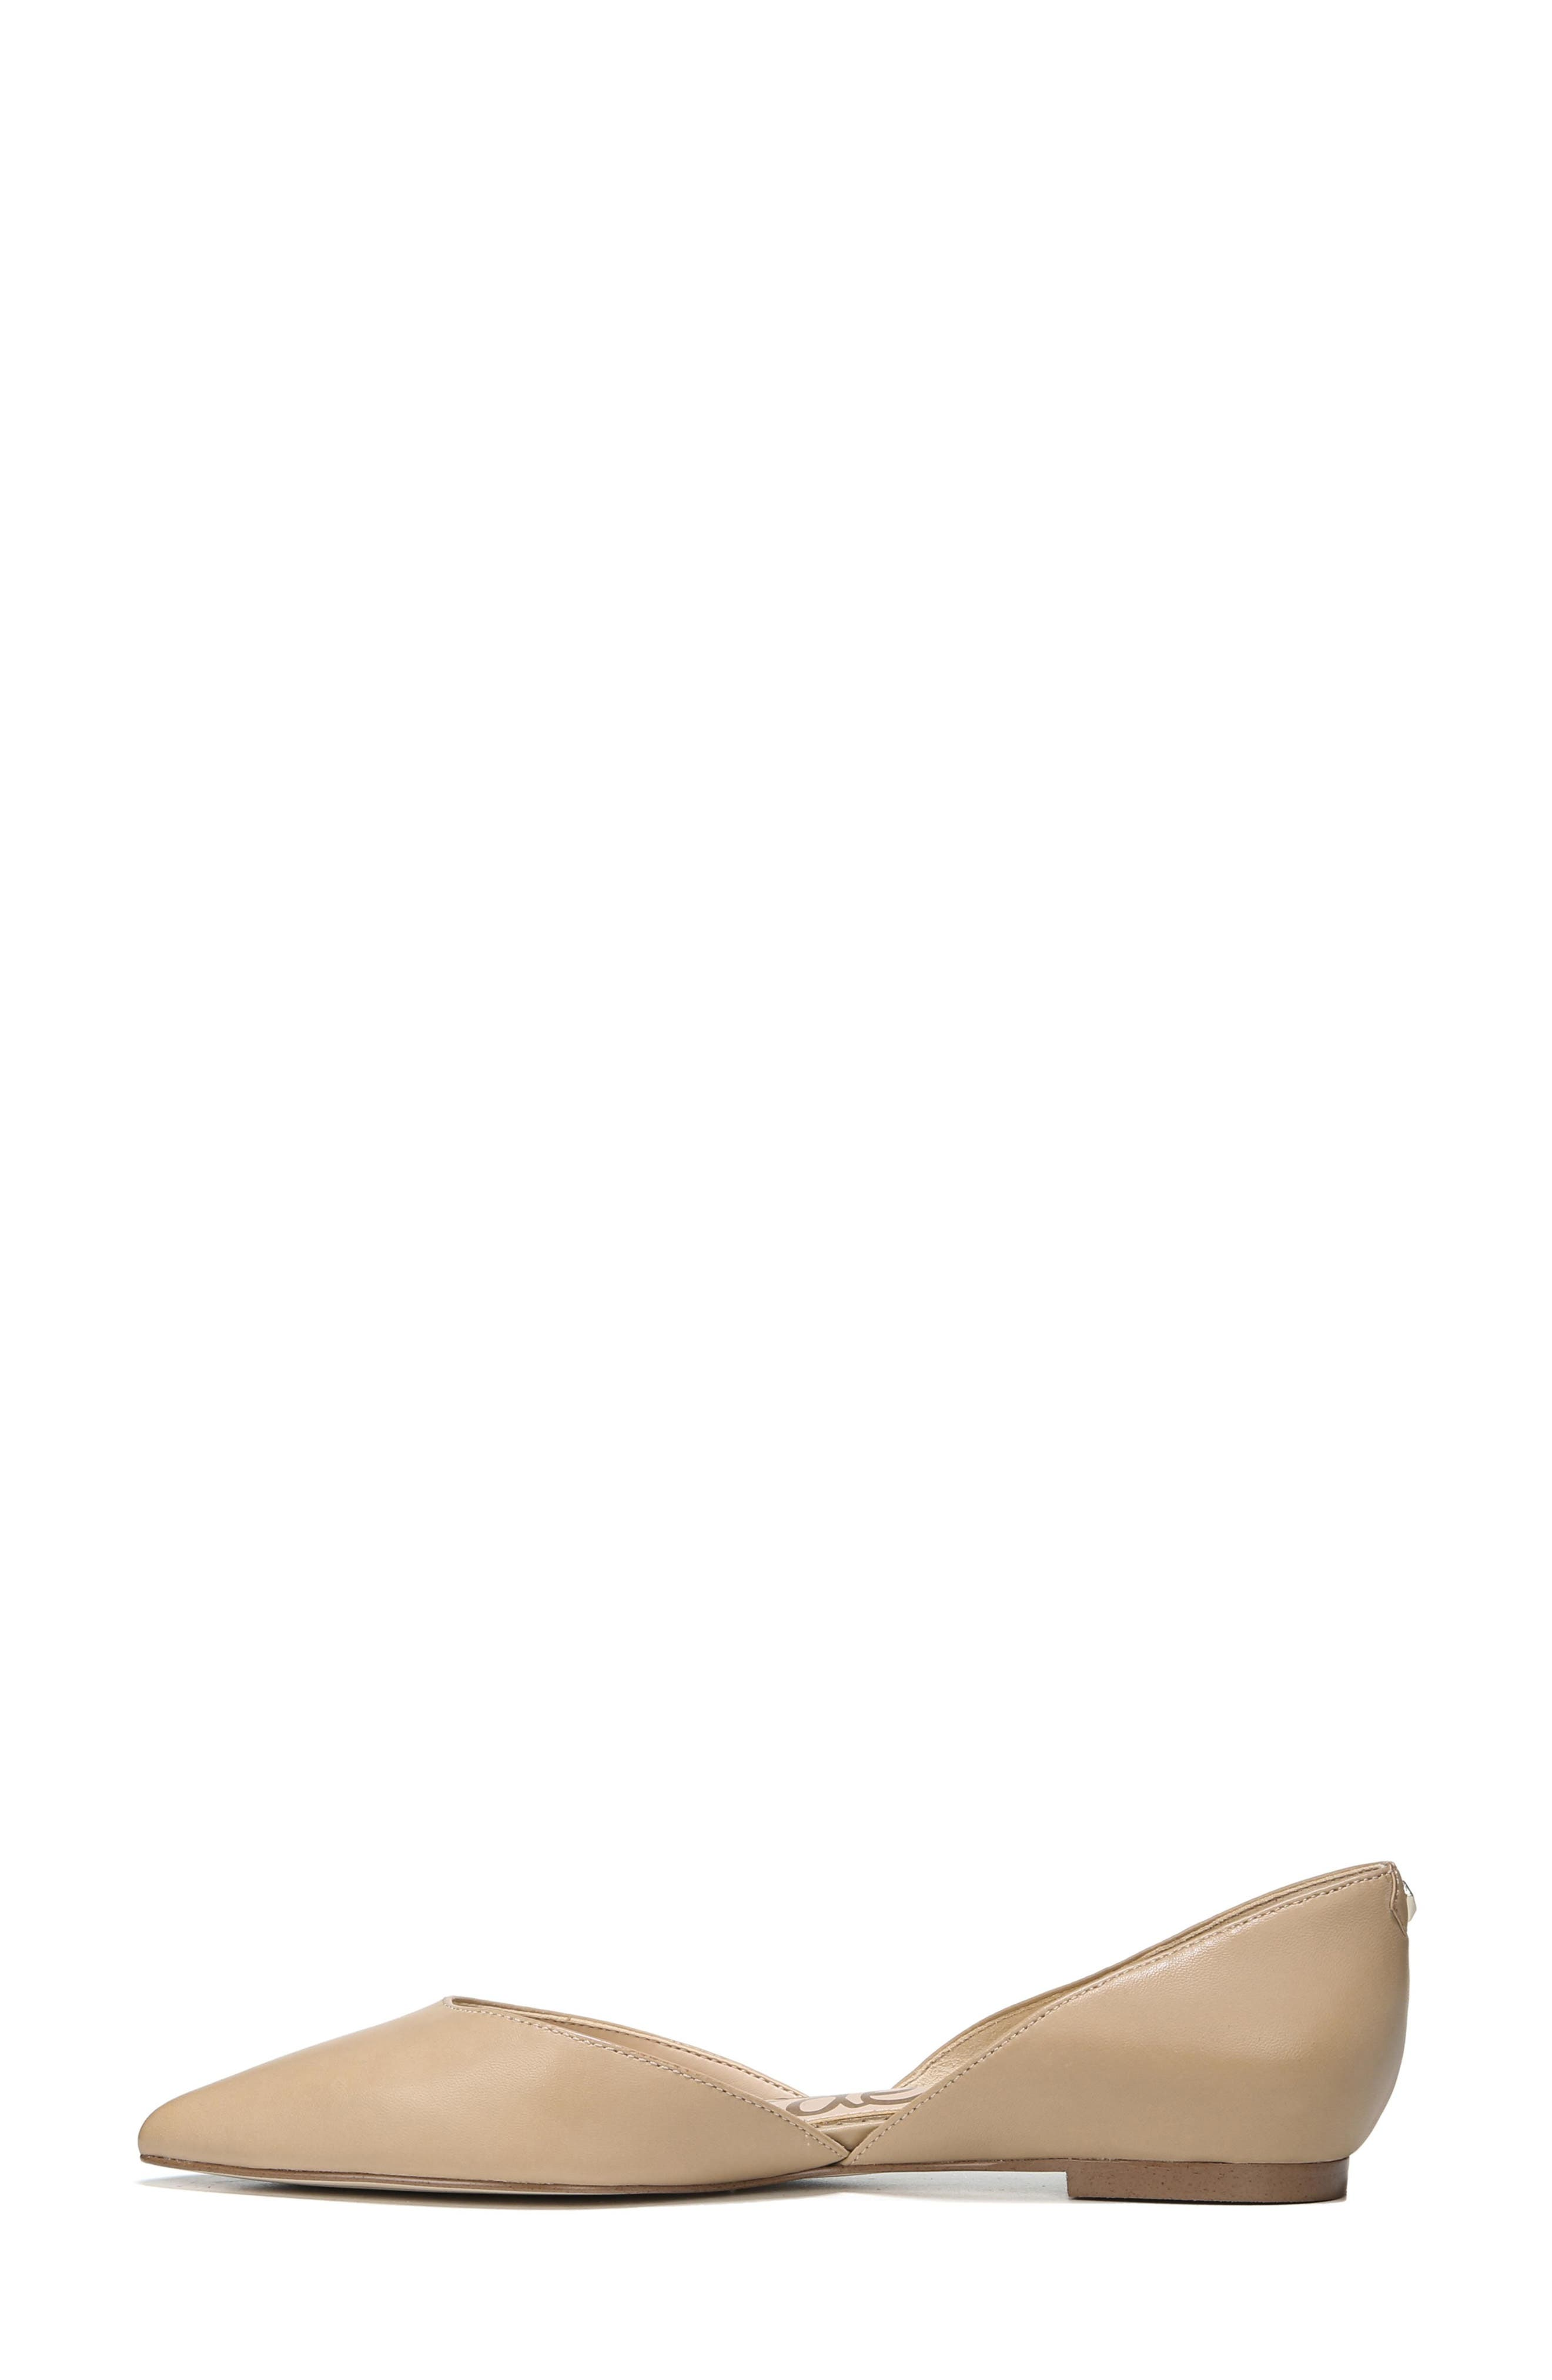 ,                             Rodney Pointy Toe d'Orsay Flat,                             Alternate thumbnail 9, color,                             CLASSIC NUDE LEATHER